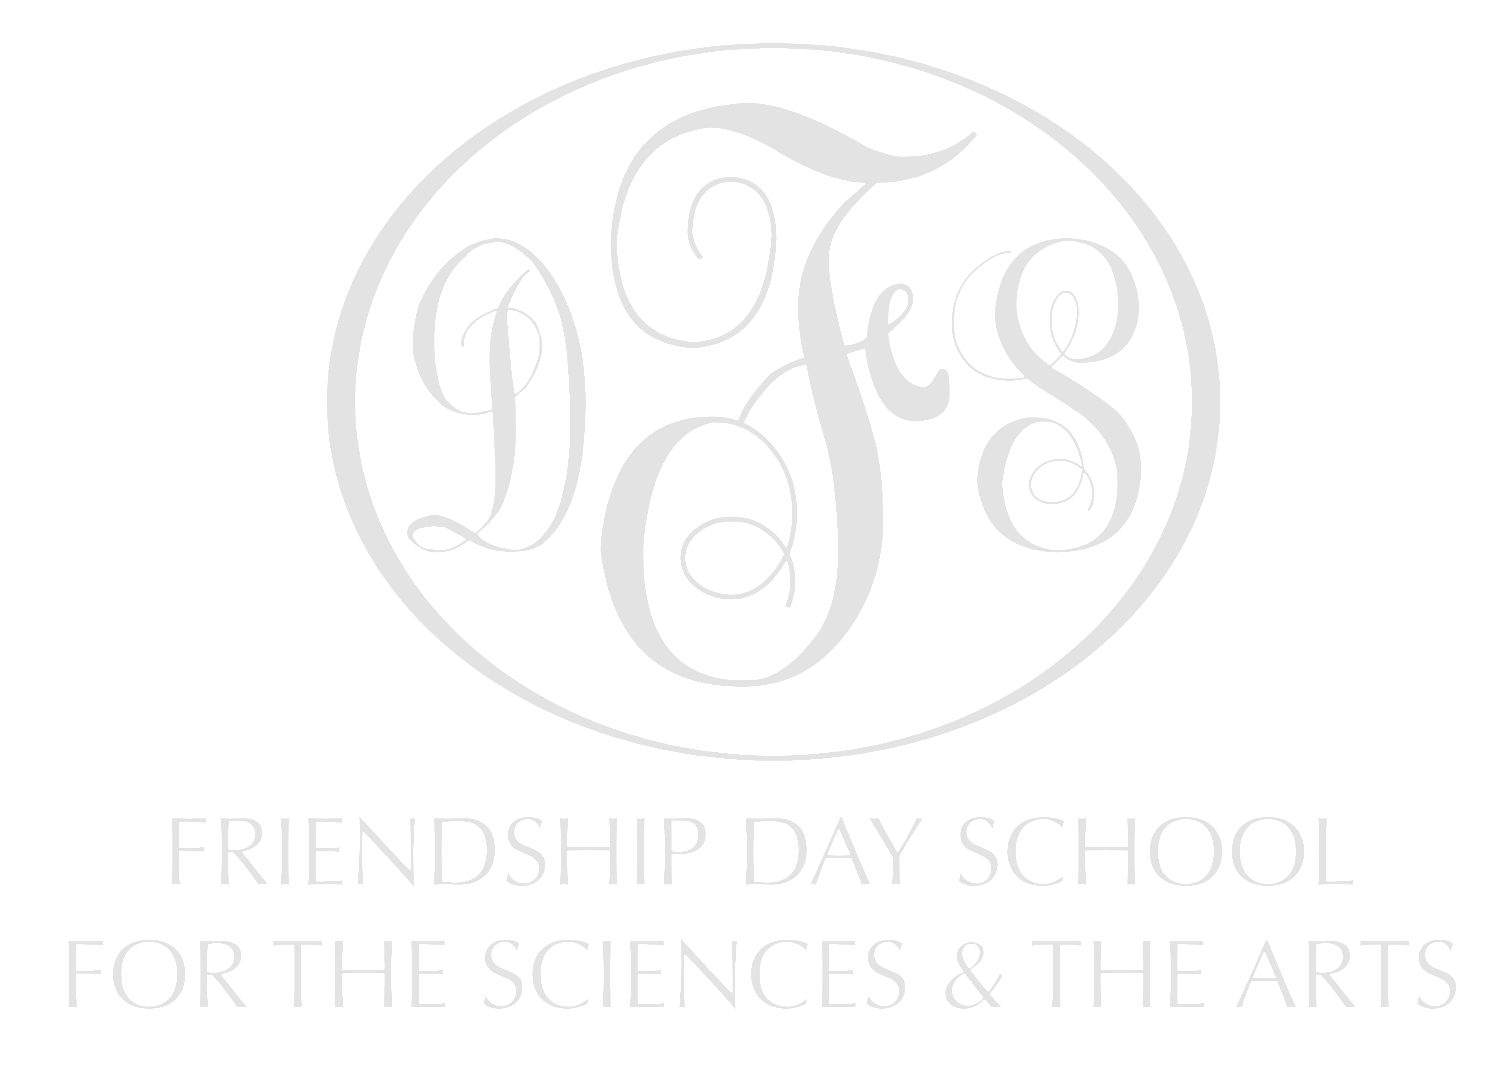 Friendship Day School - Charlotte